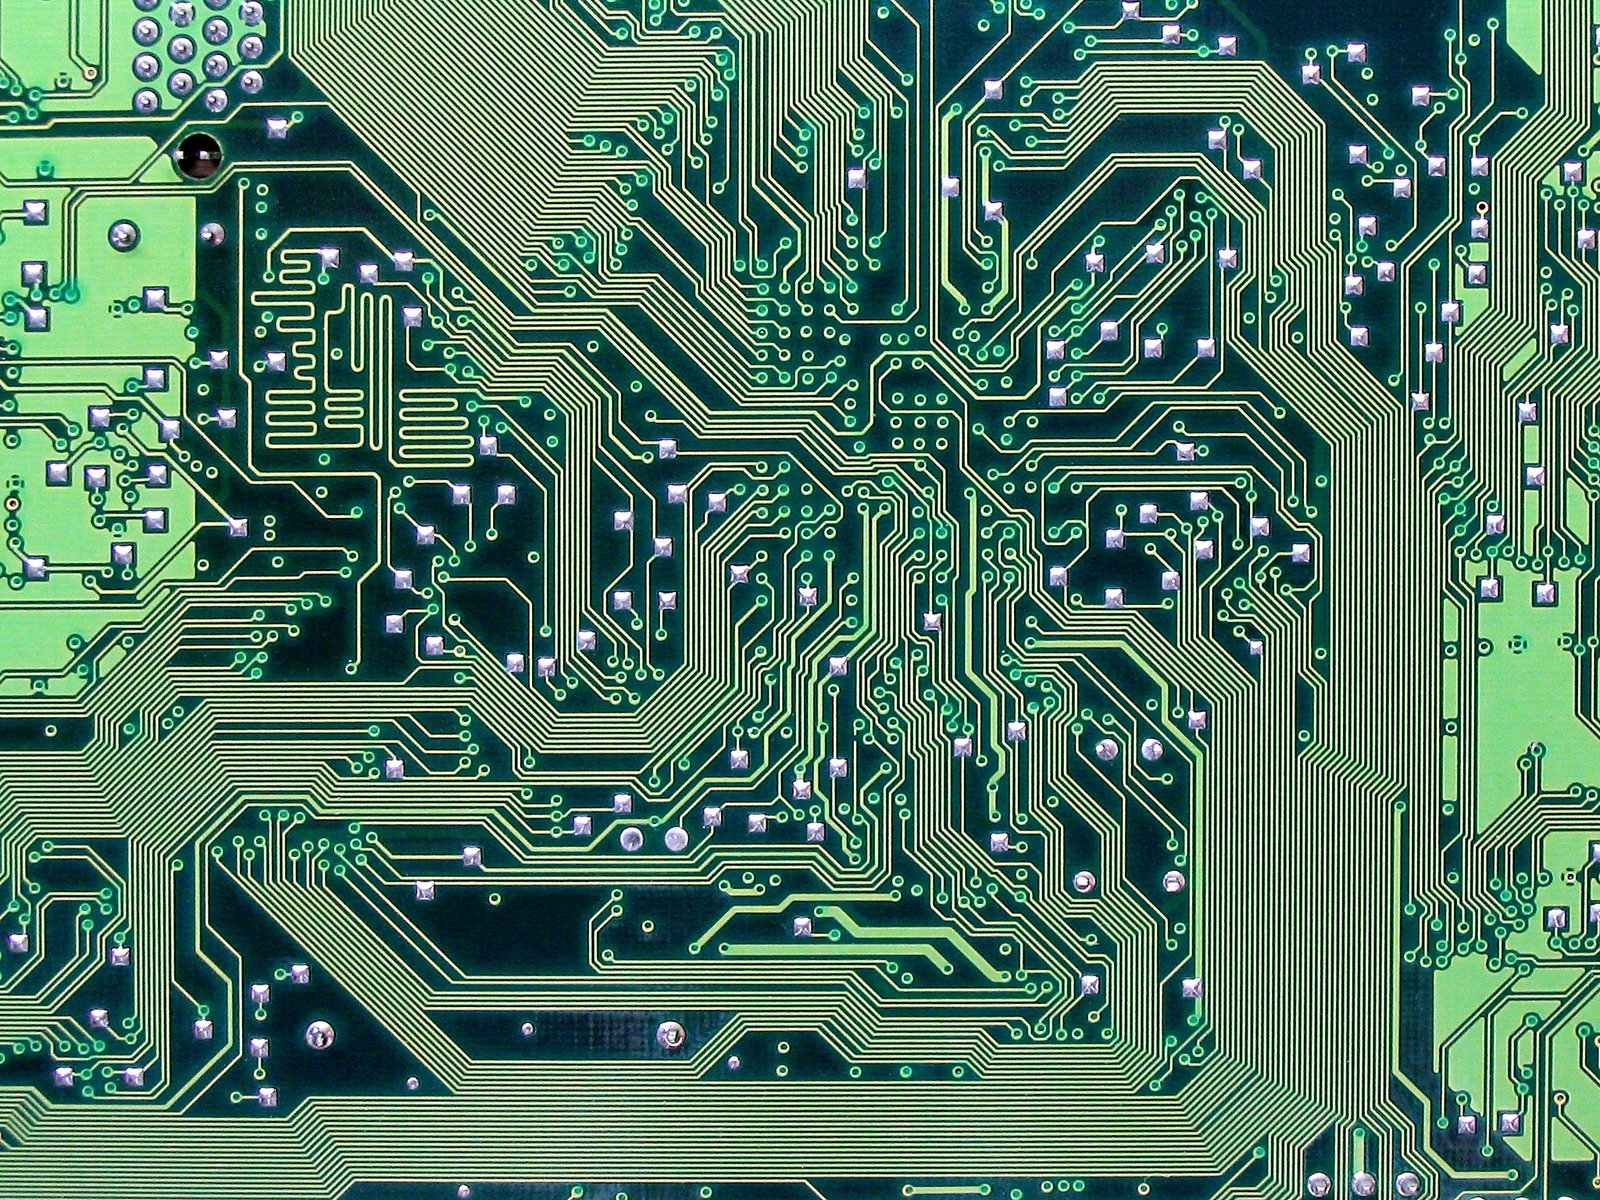 Free Circuit Board Background Images Pictures And Royalty With Electronic Components Inside A Computer Stock Photo Cpu